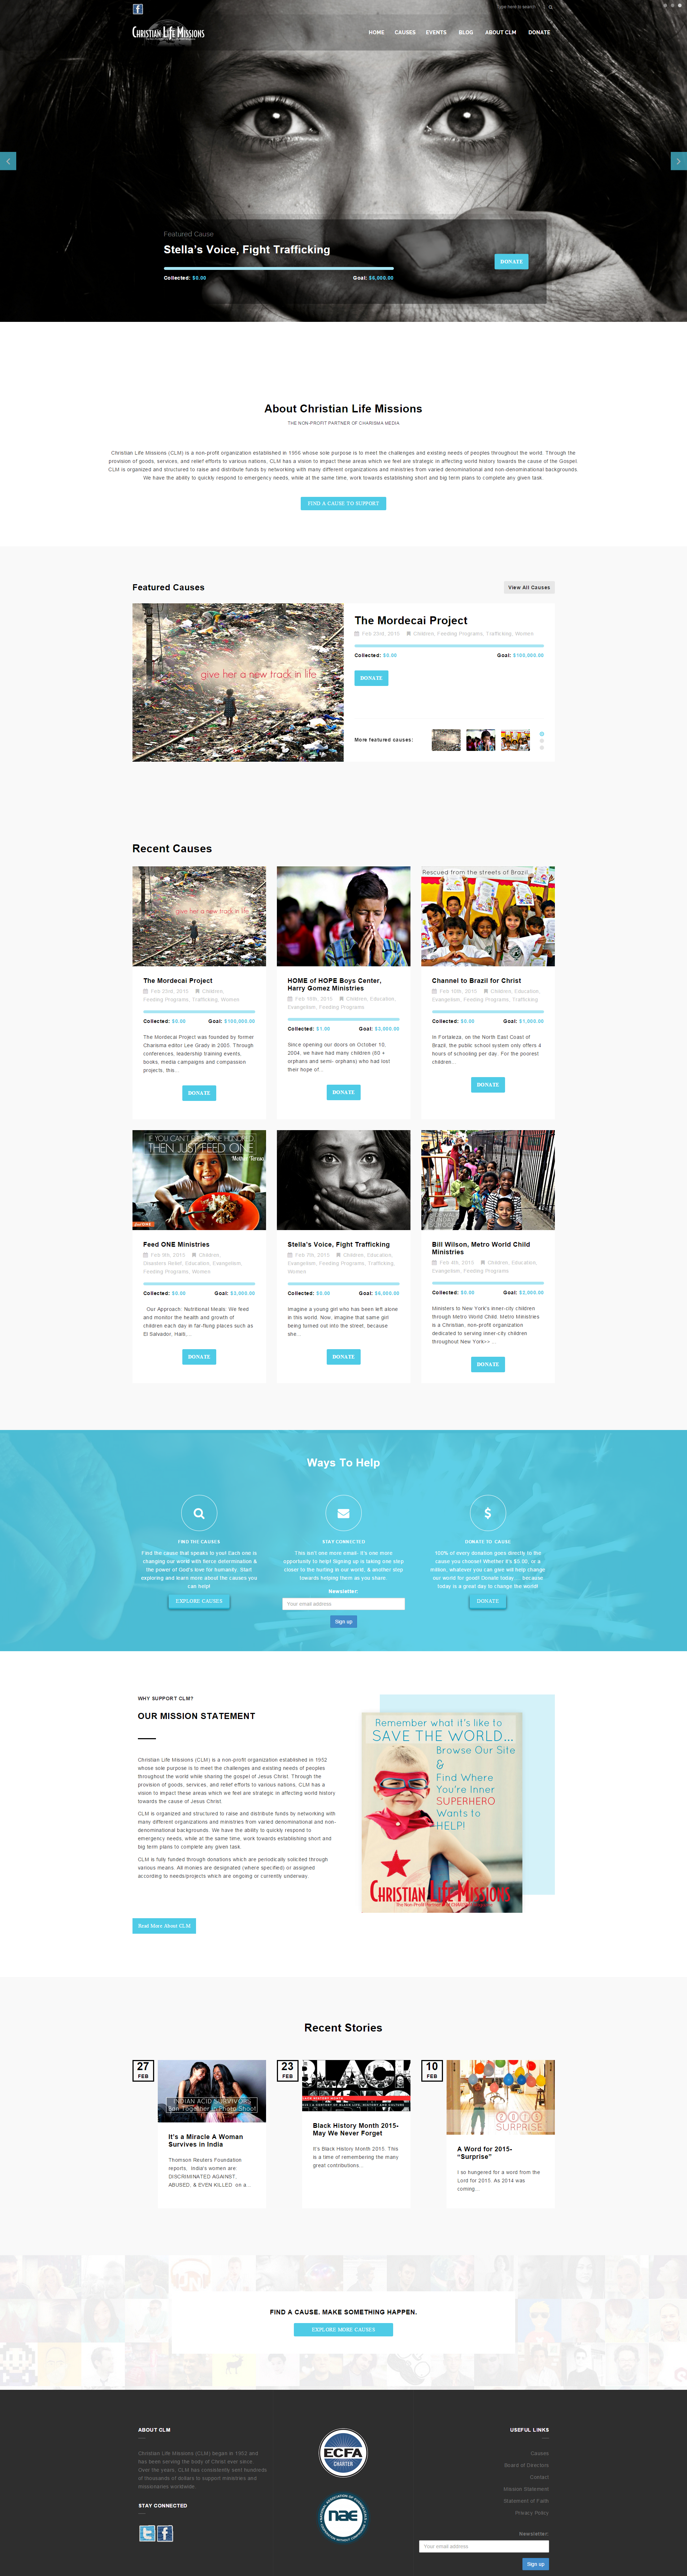 christian life missions website redesign after